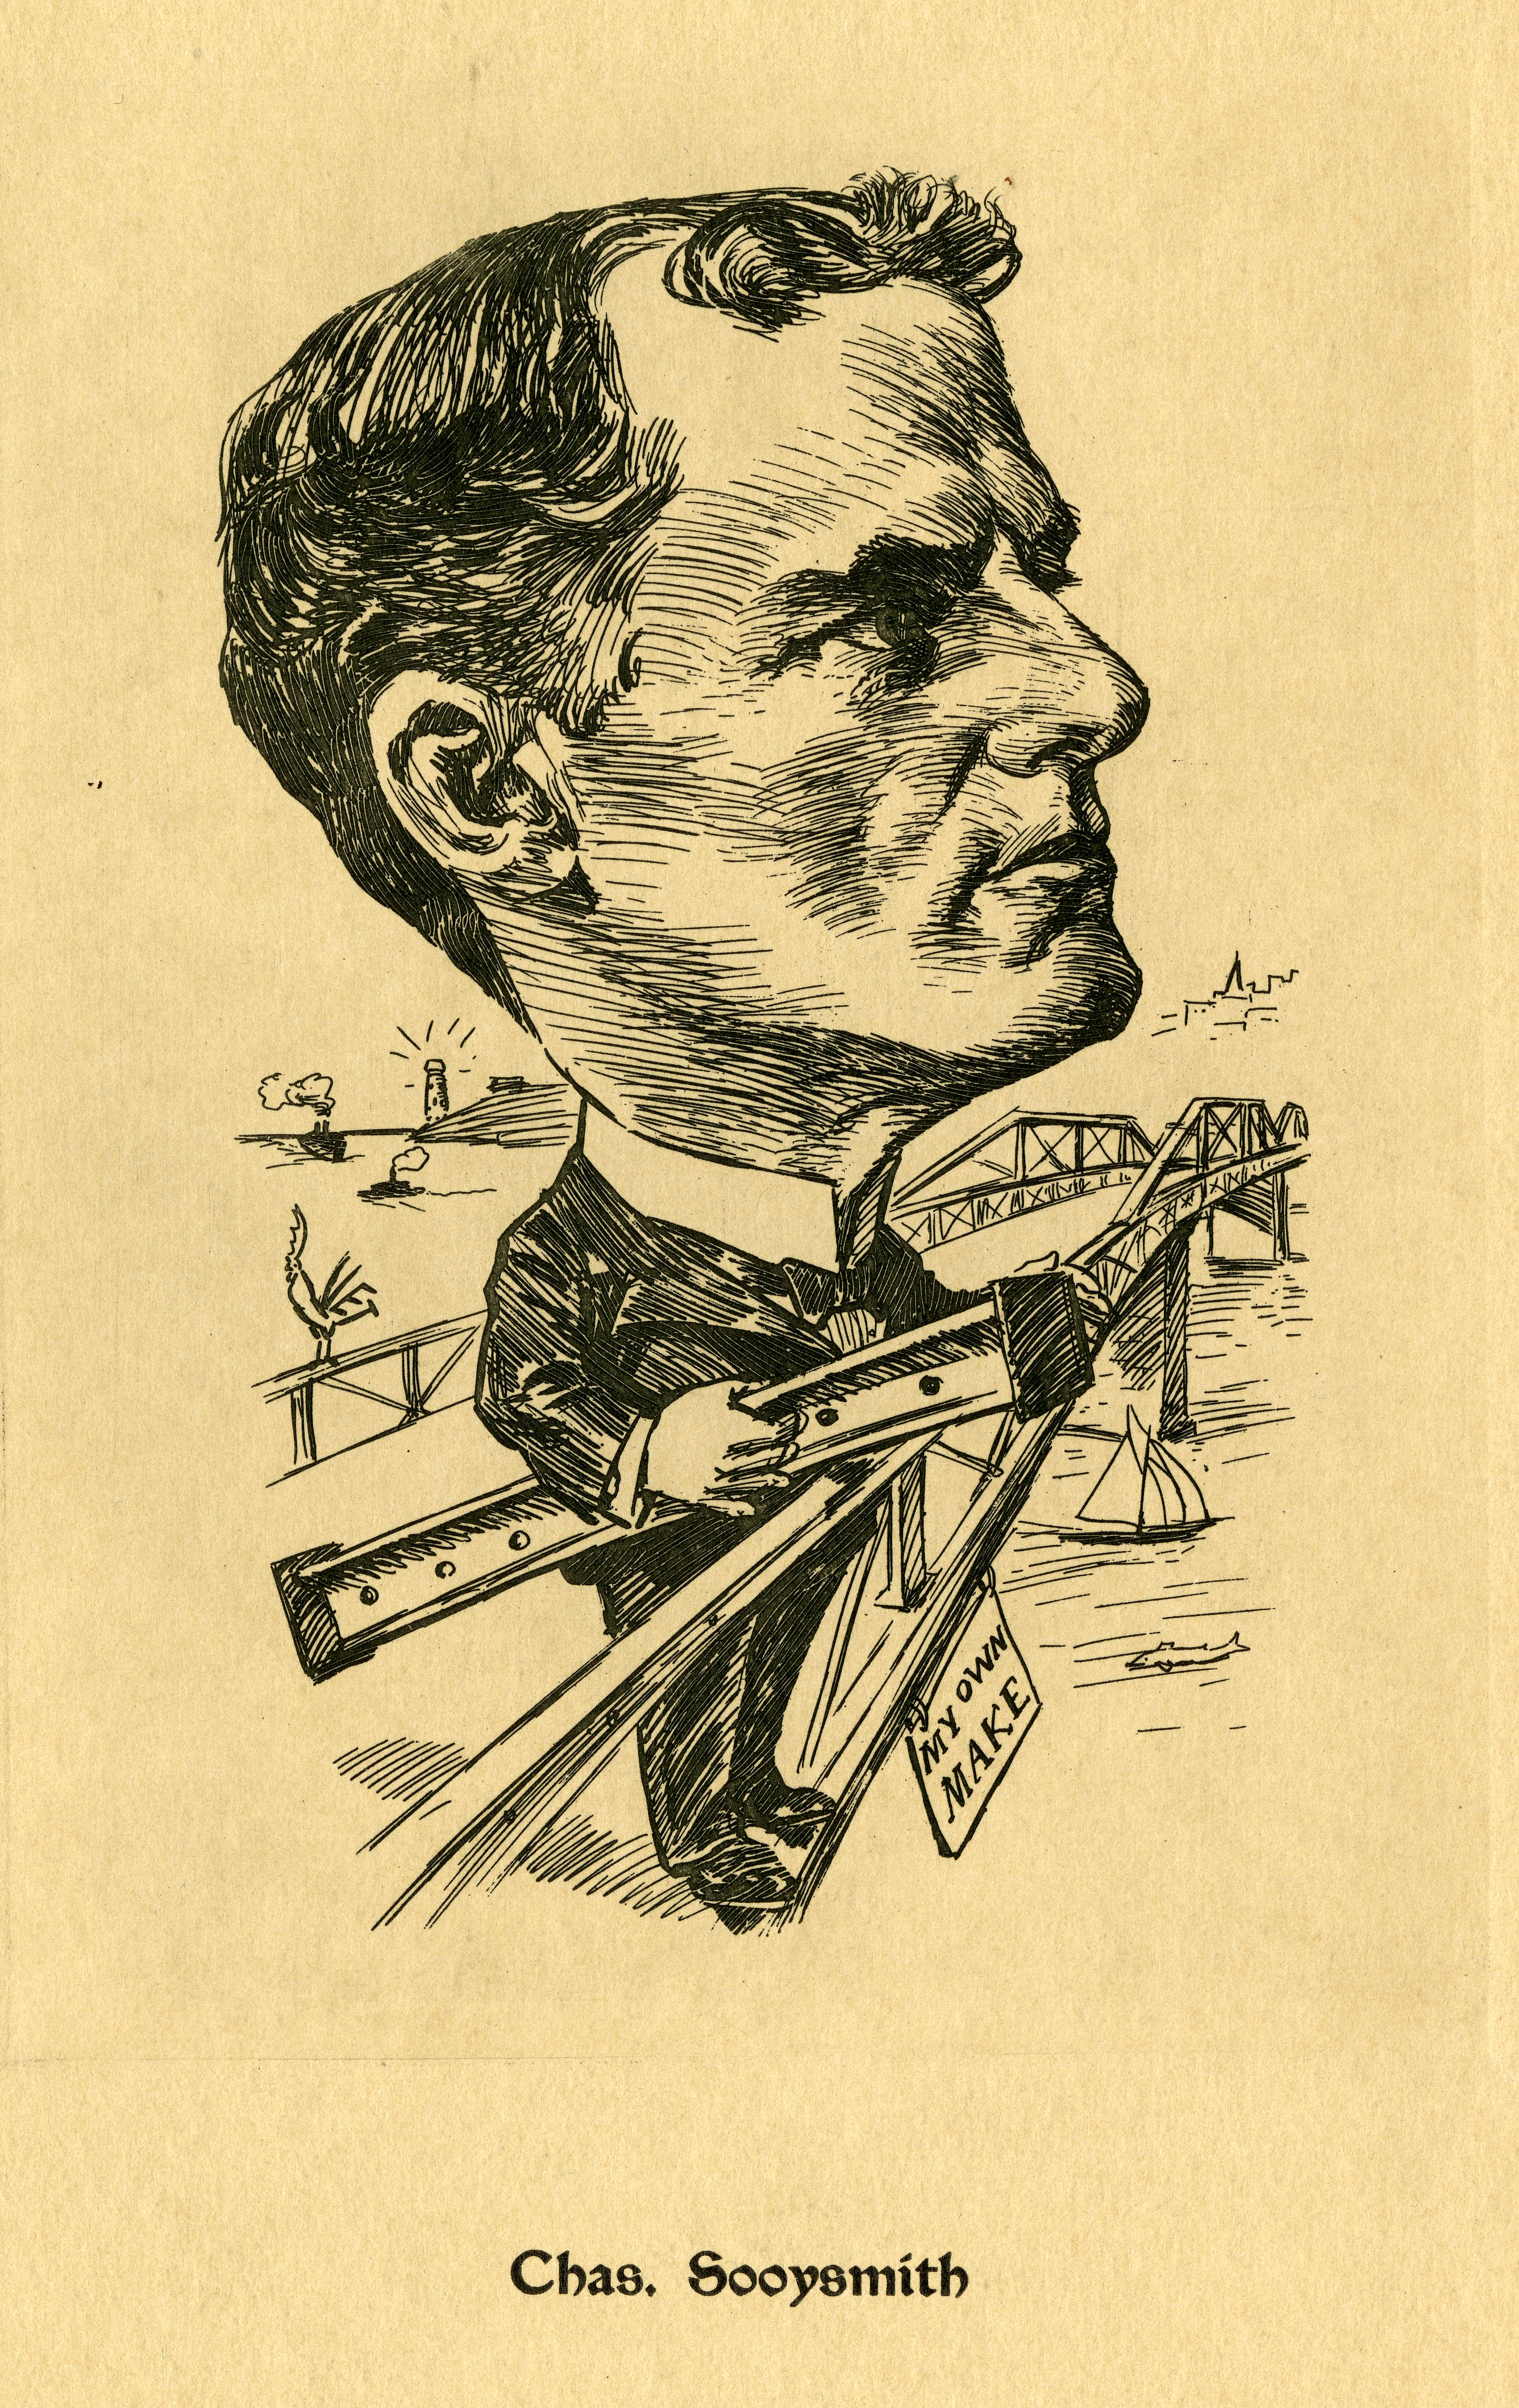 Caricature of Charles Sooysmith (1855-1916), civil engineer and bridge builder.